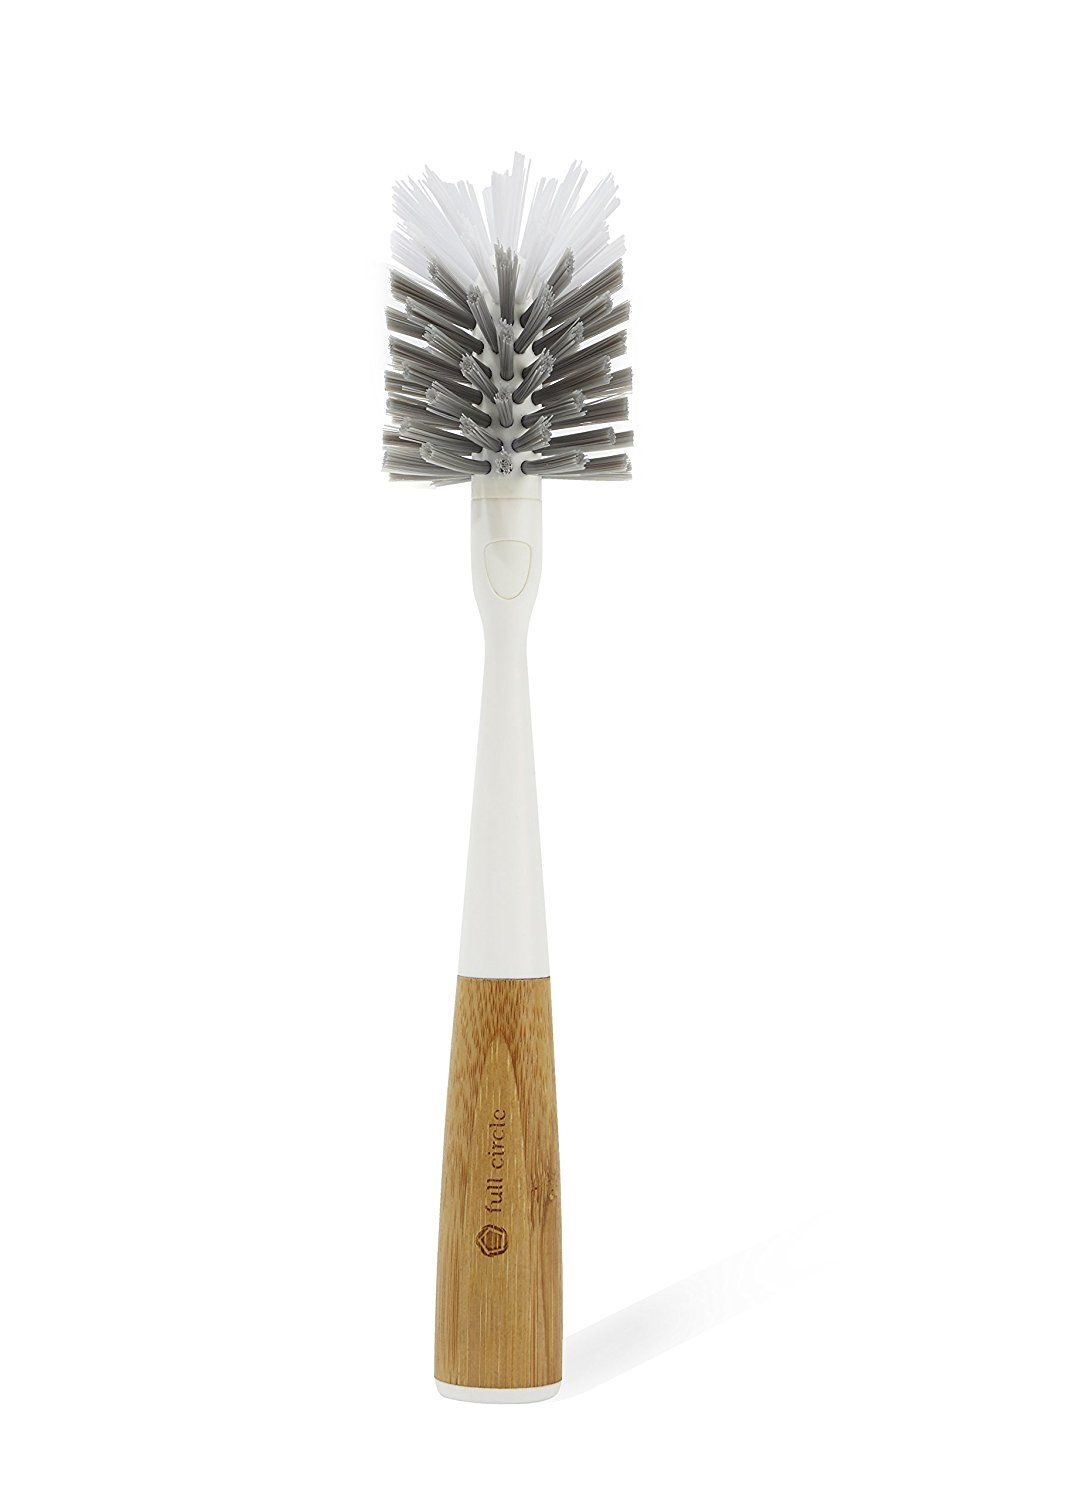 Full circle clean reach bottle brush with